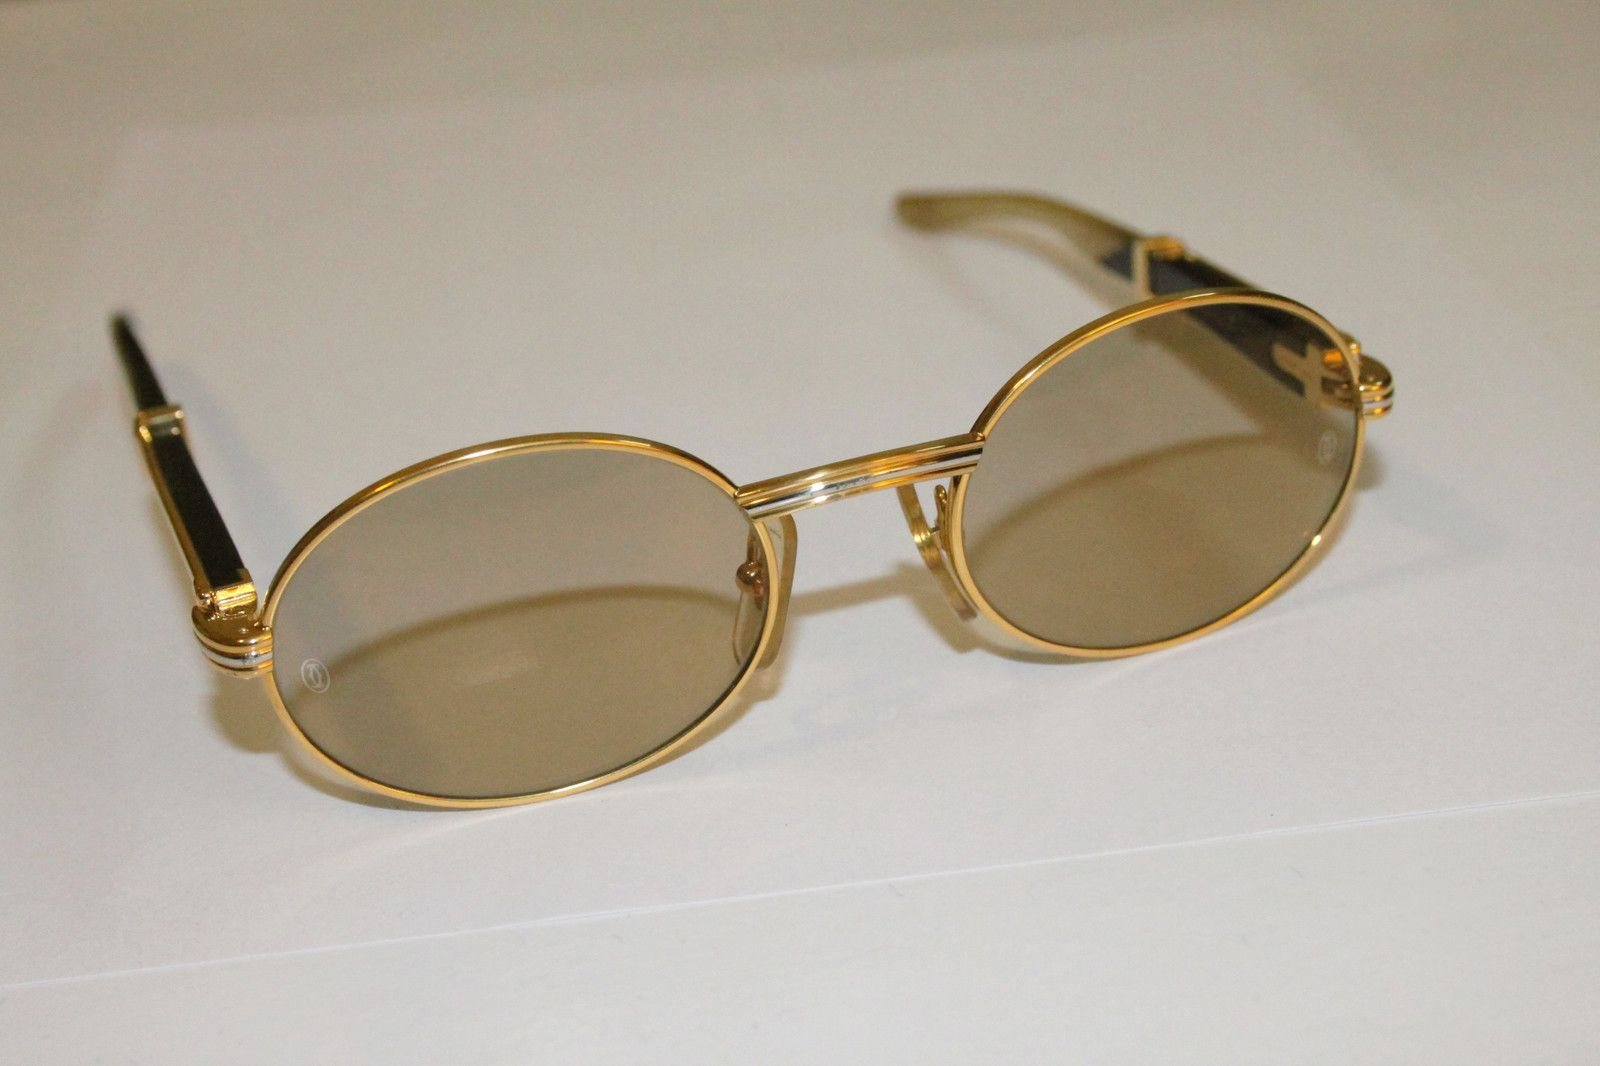 890bdeda38a Cartier Gold and Wood Sunglasses